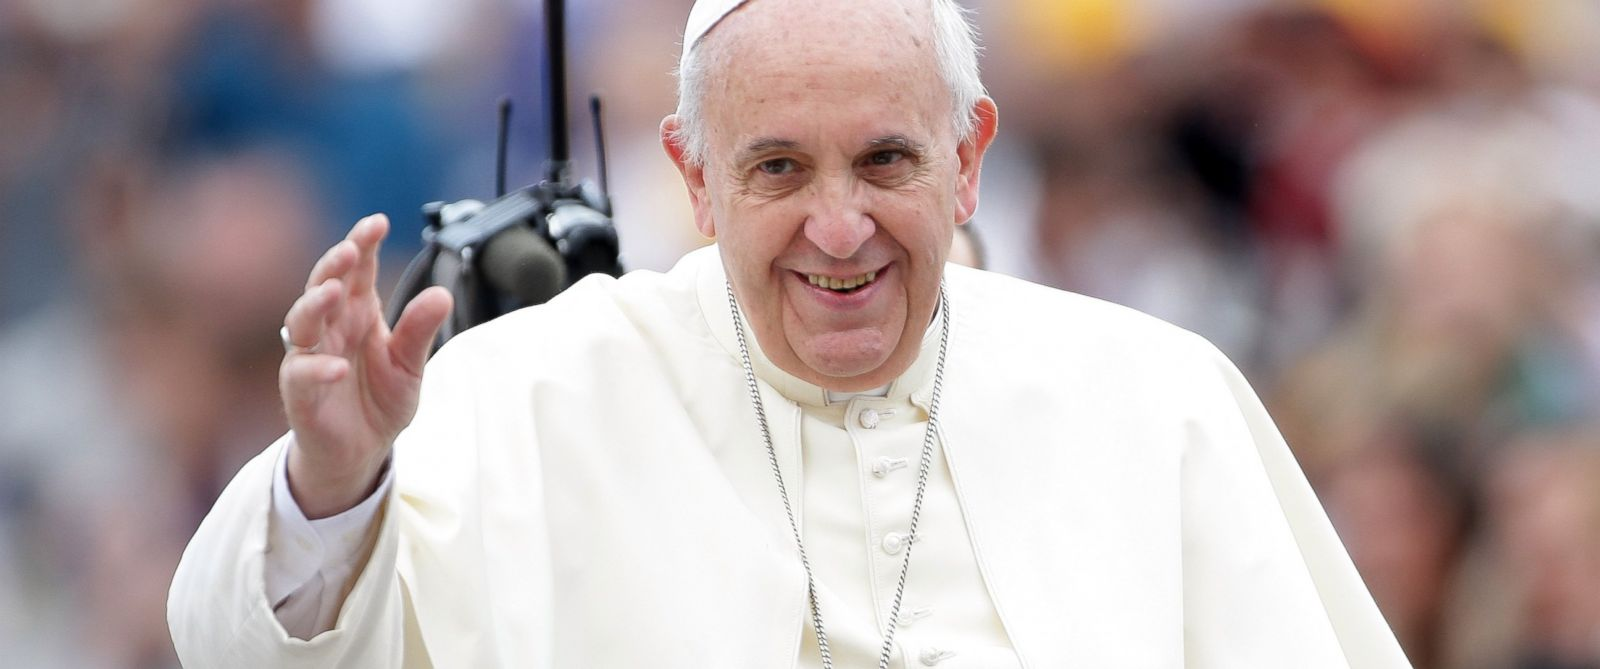 PHOTO: Pope Francis waves as he arrives at St. Peters Square for his weekly audience on Sept. 17, 2014 in Vatican City, Vatican.